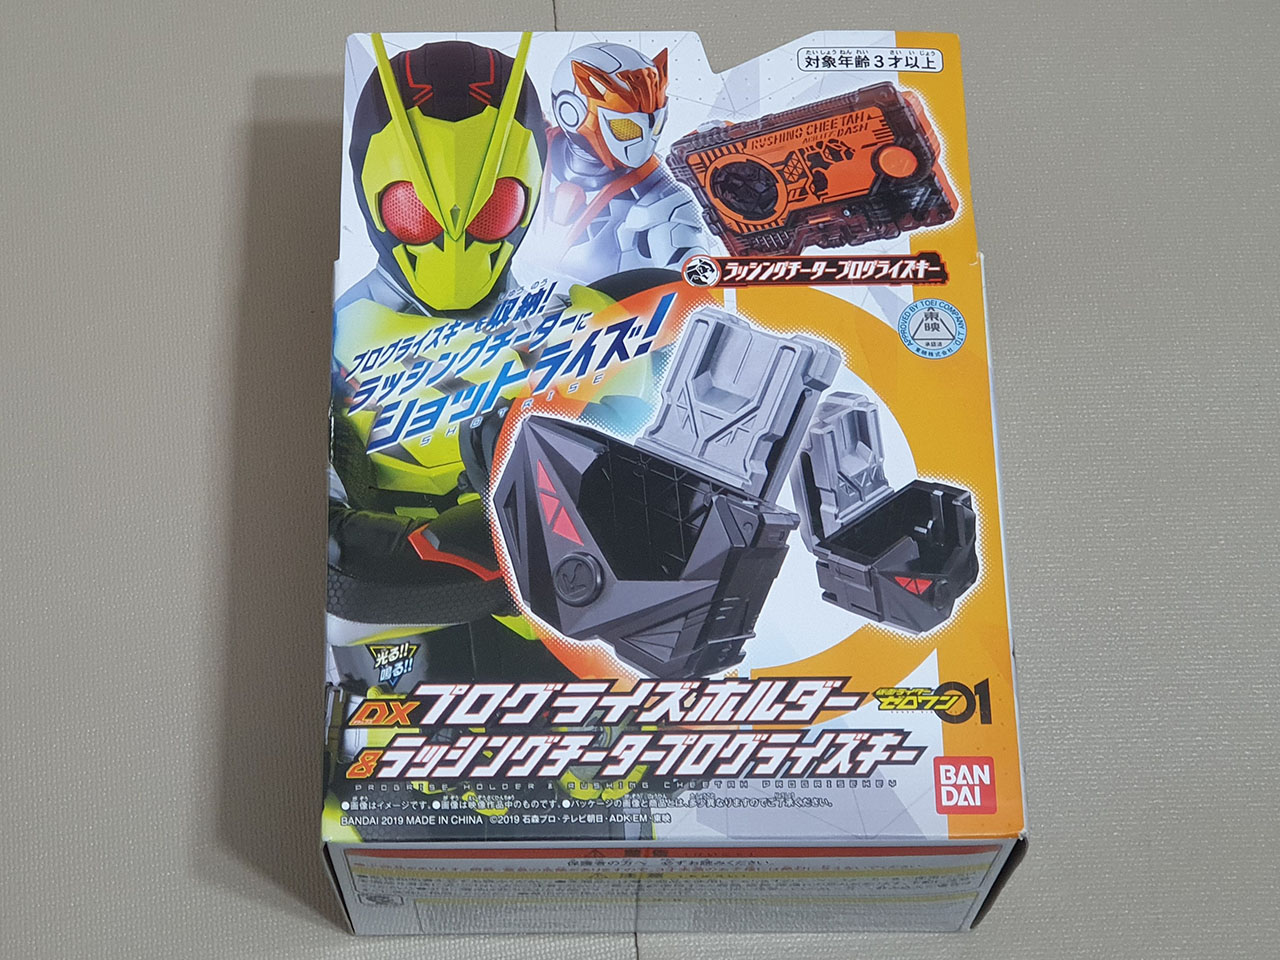 Kamen Rider Zero One Progrise Key Holder and Rushing Cheetah Box